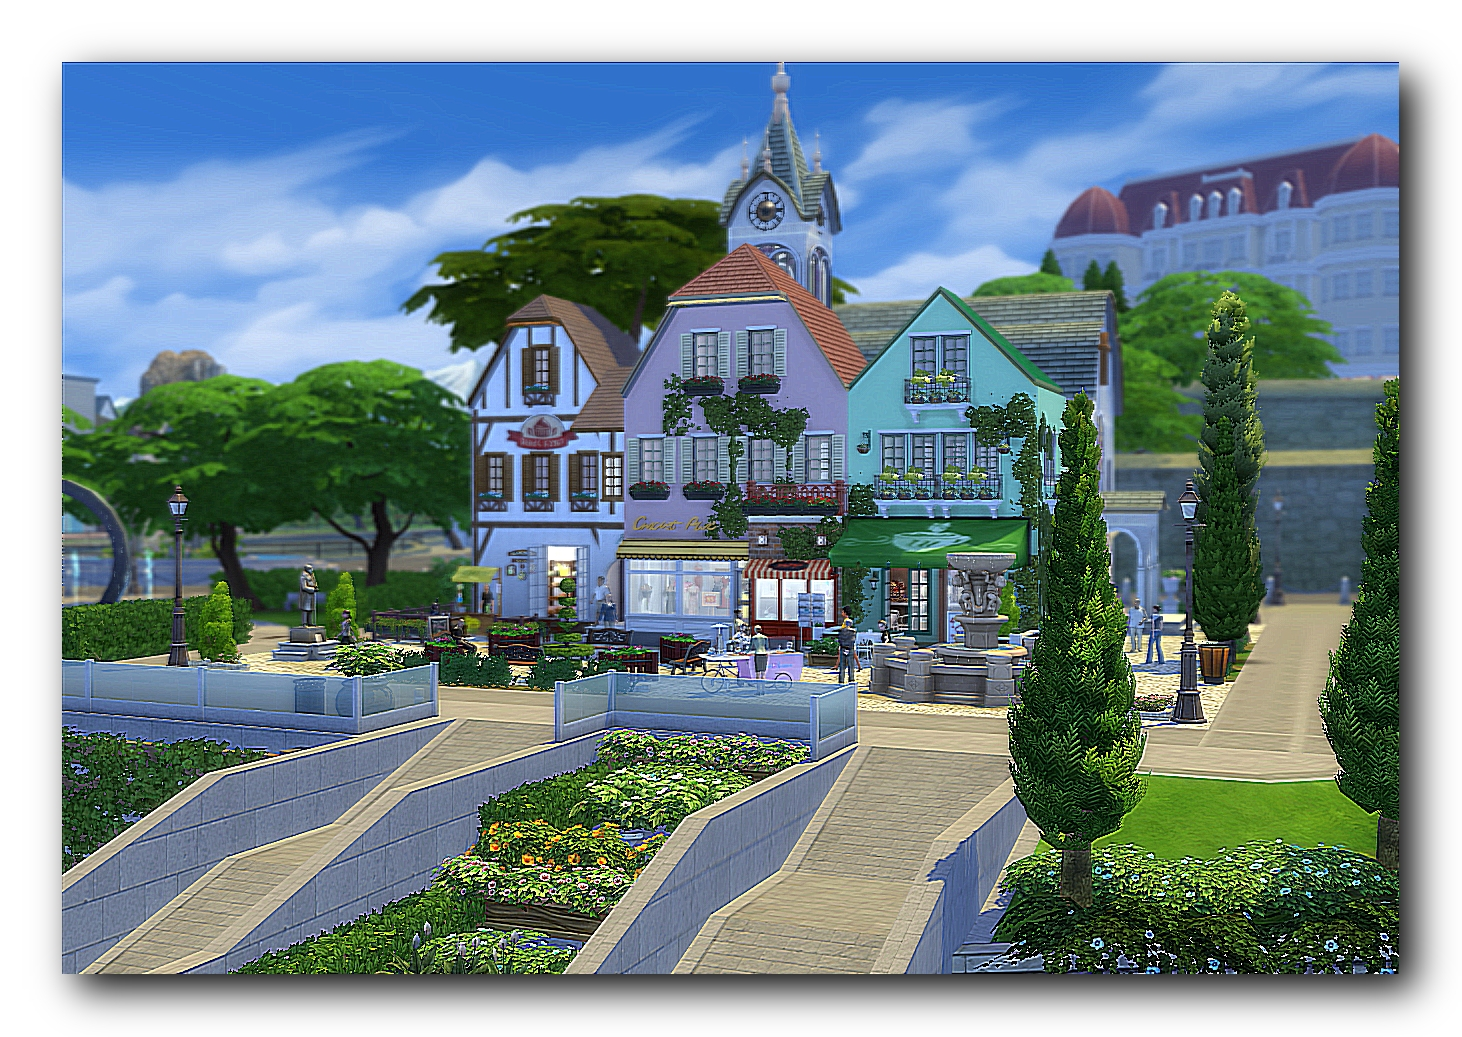 St. Michael's Church and Shops by Dalila